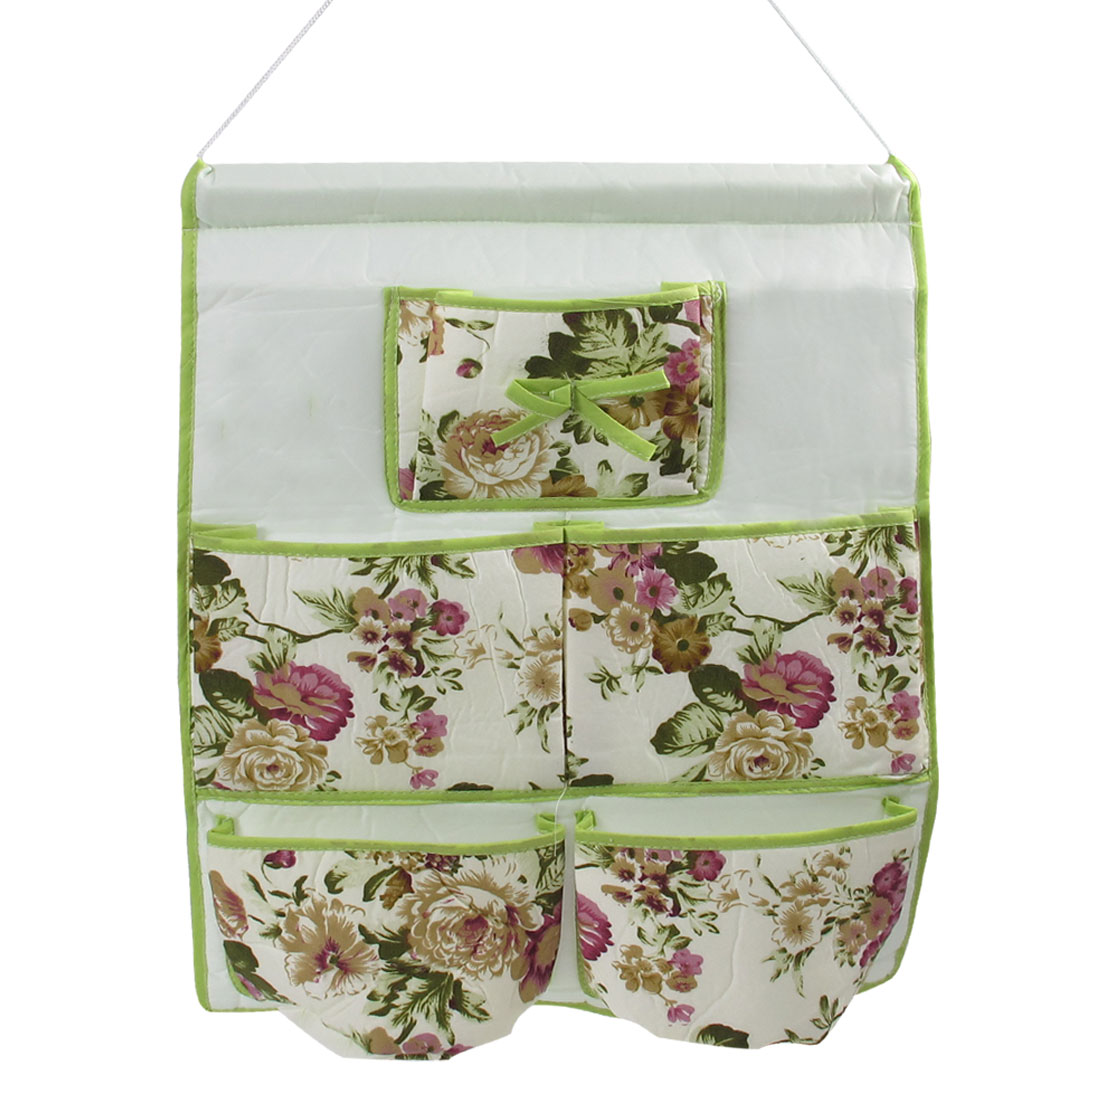 Floral Print 5 Pockets Cell Phone Wall Hanging Storage Organizer Bag Light Green